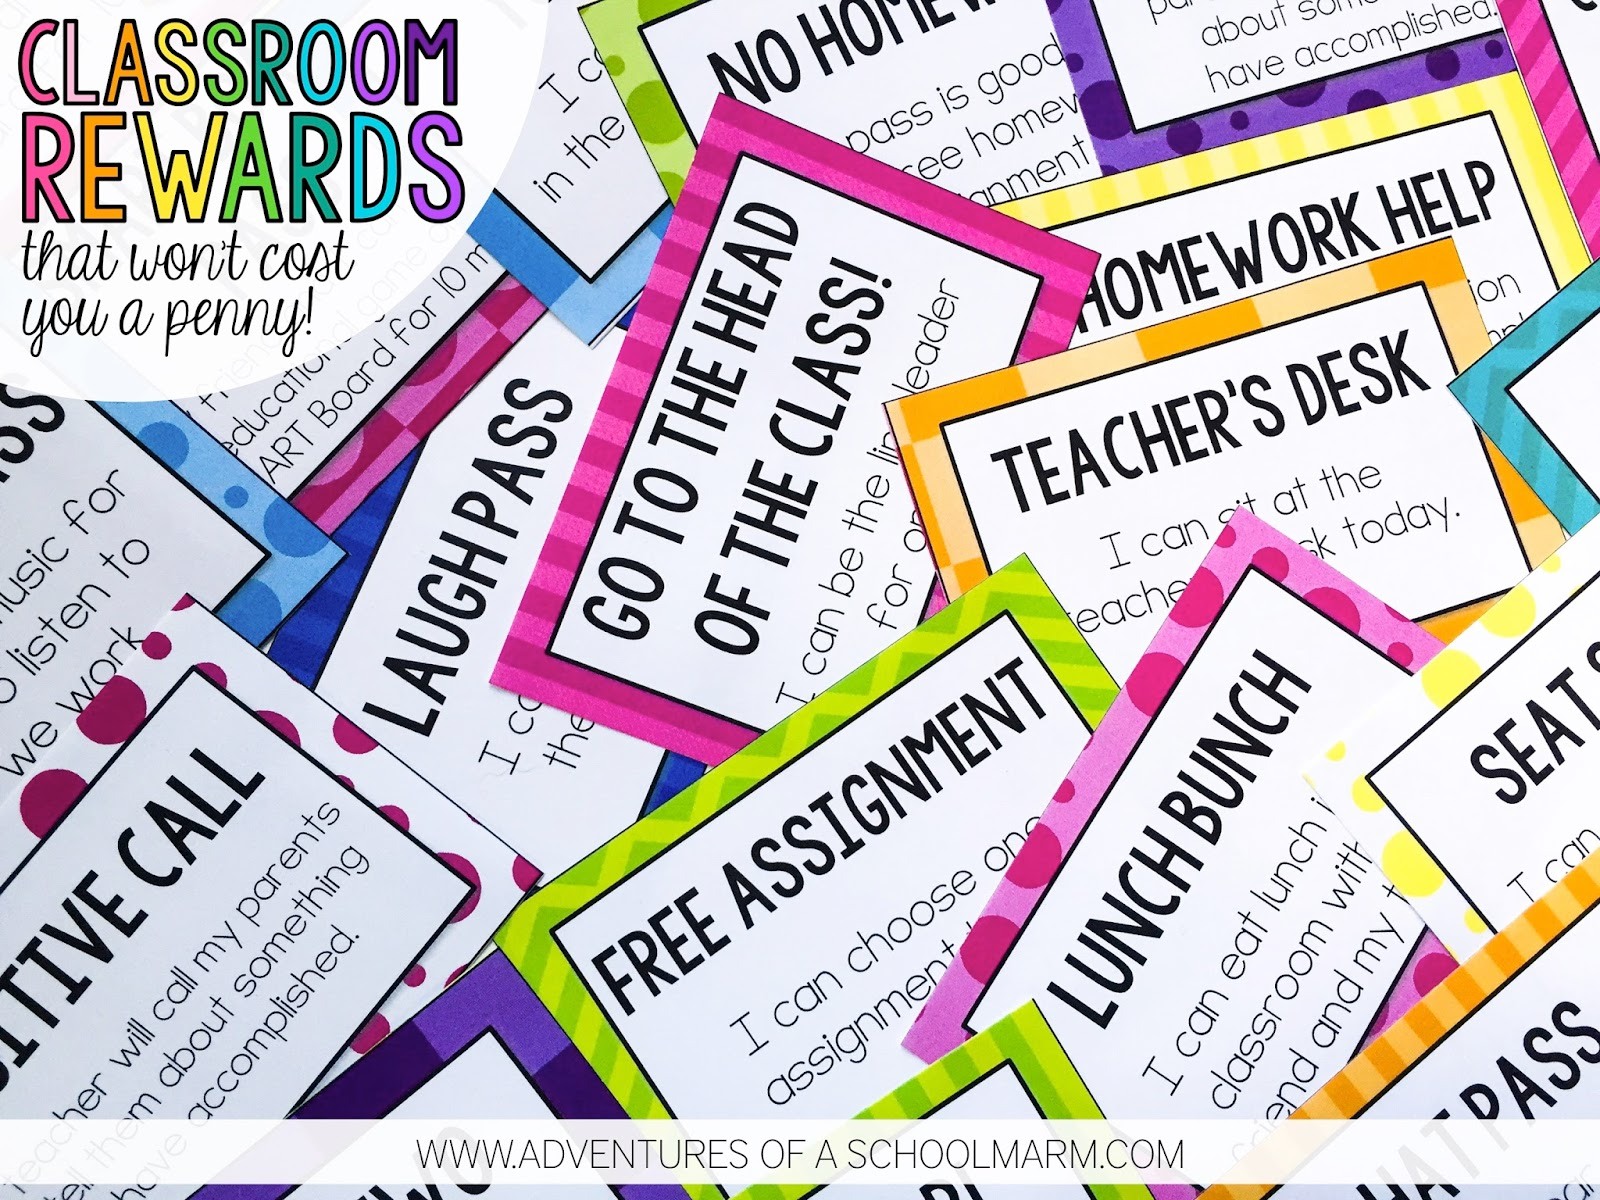 Classroom Reward Ideas Elementary ~ Classroom rewards that won t cost you a penny